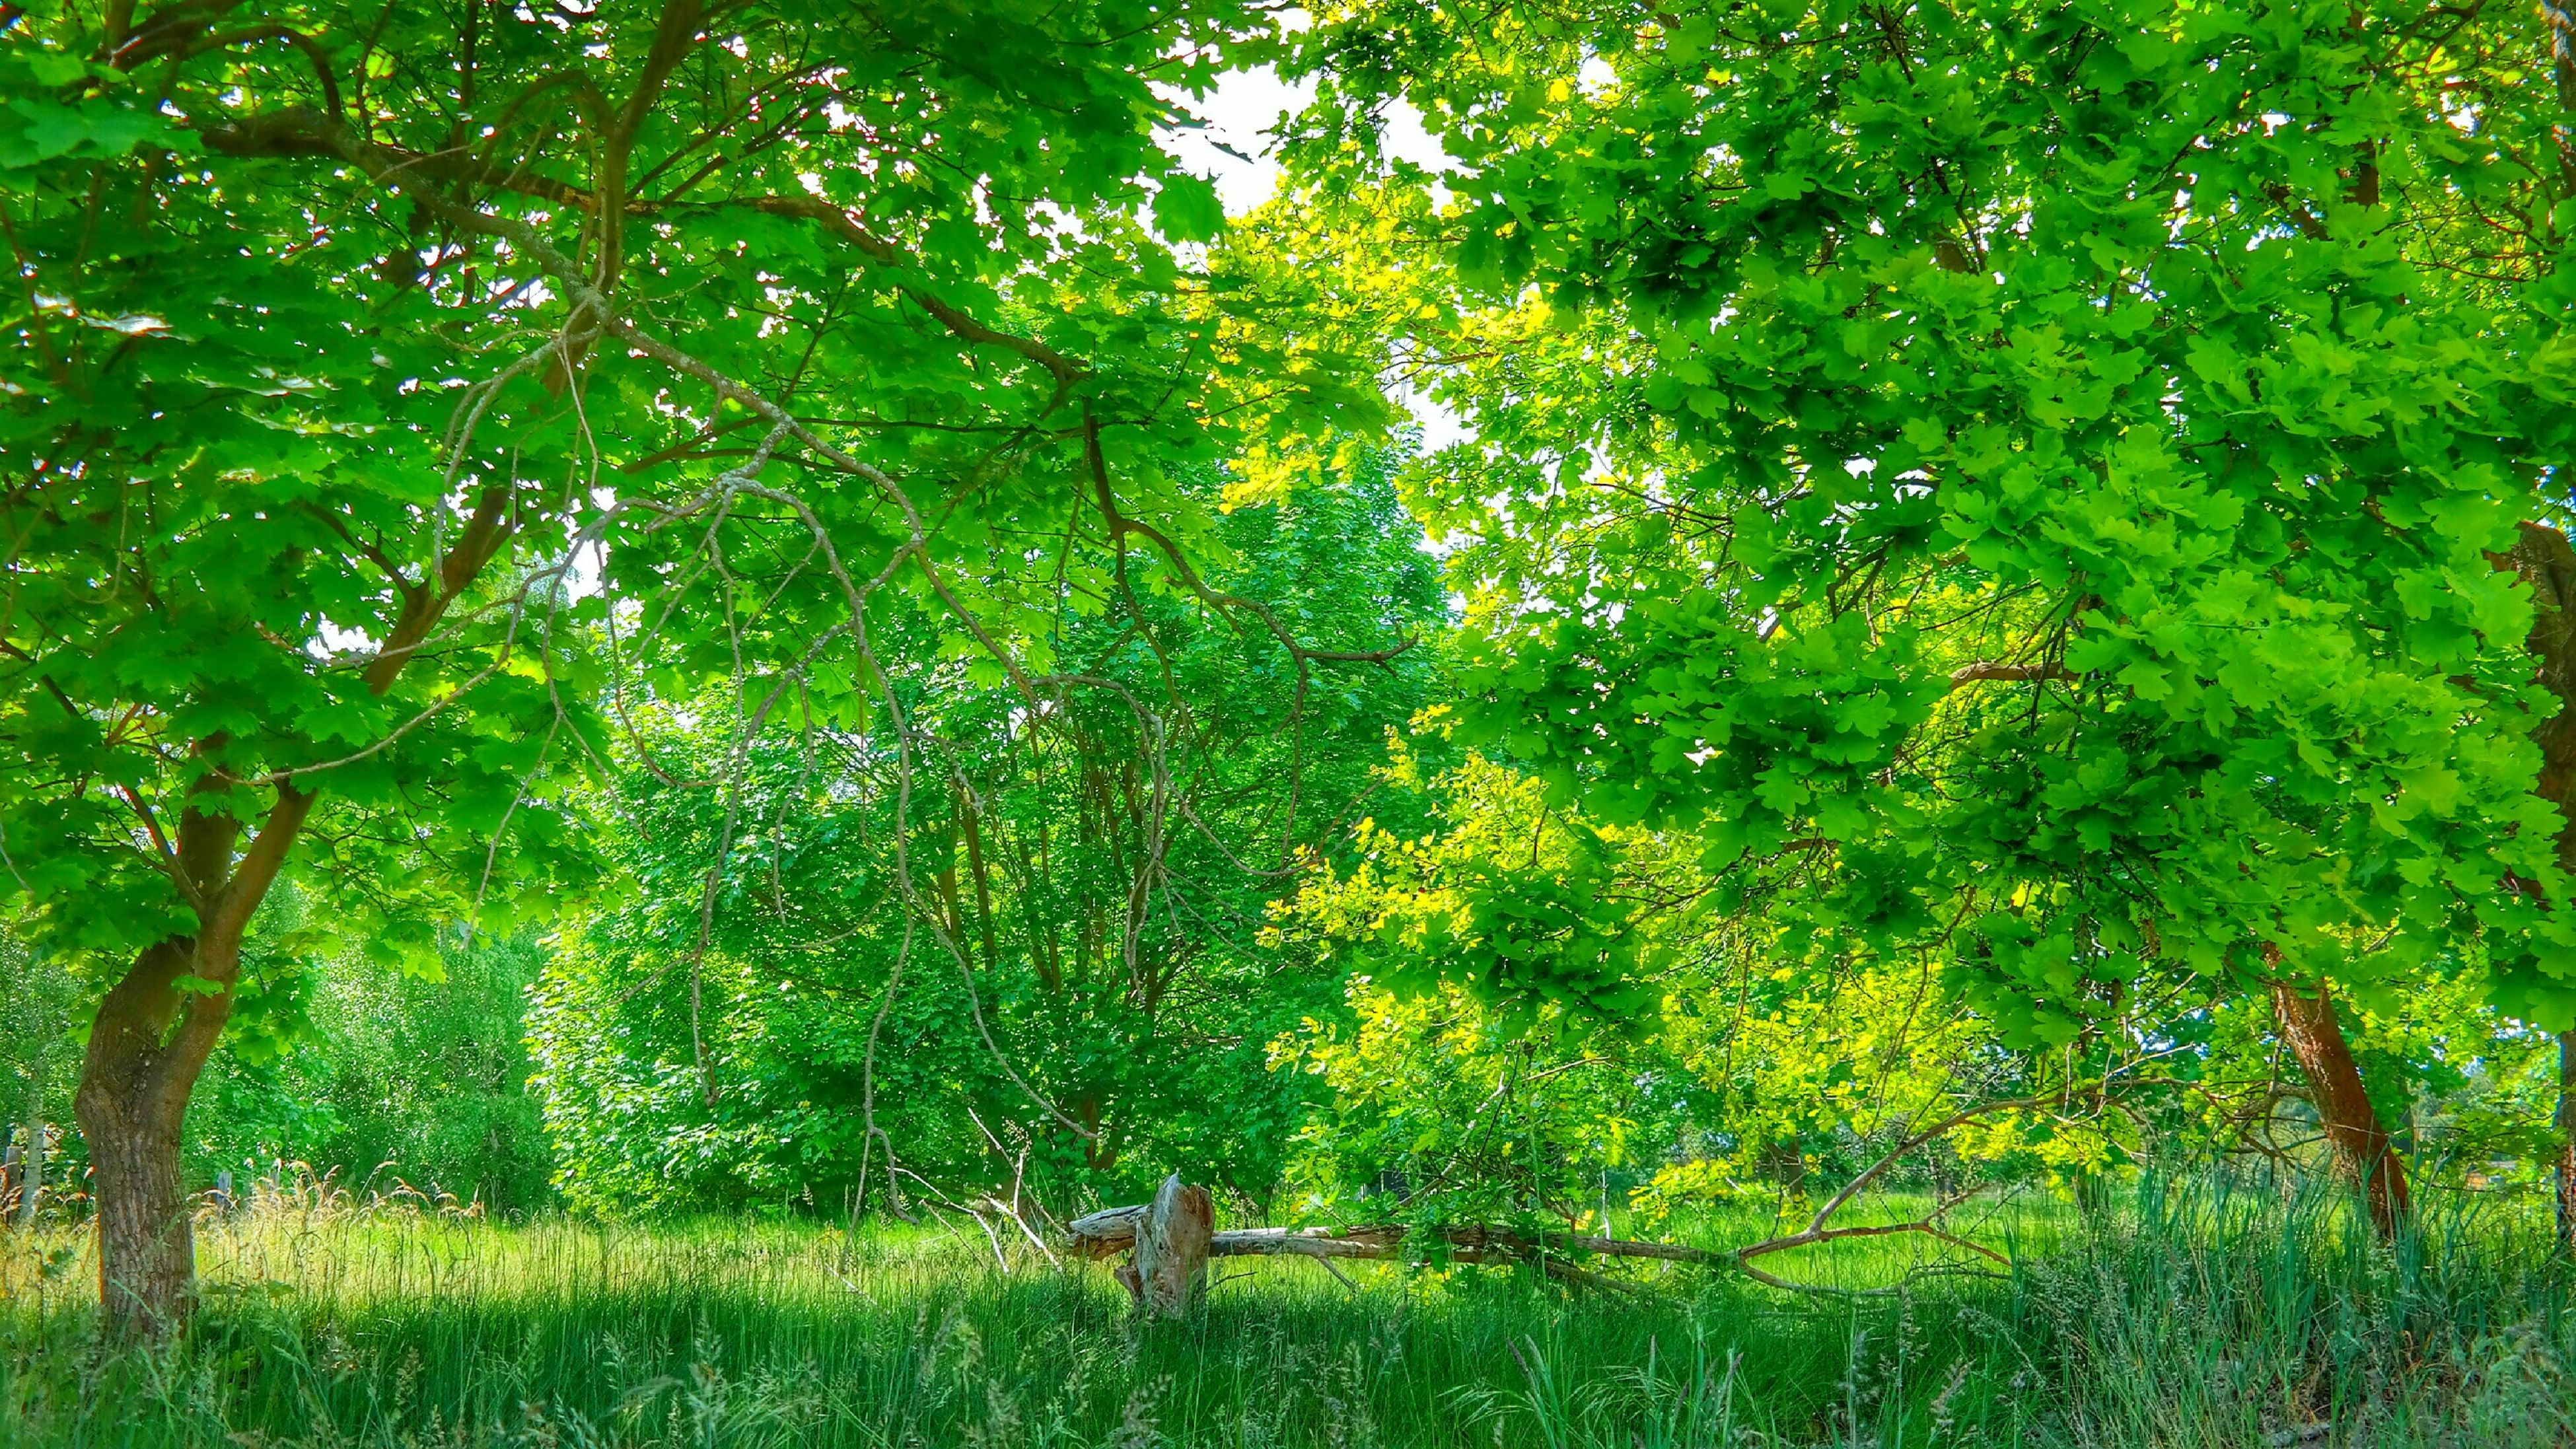 tree, growth, green color, tranquility, grass, branch, nature, beauty in nature, field, lush foliage, tranquil scene, plant, park - man made space, tree trunk, sunlight, growing, scenics, green, day, outdoors